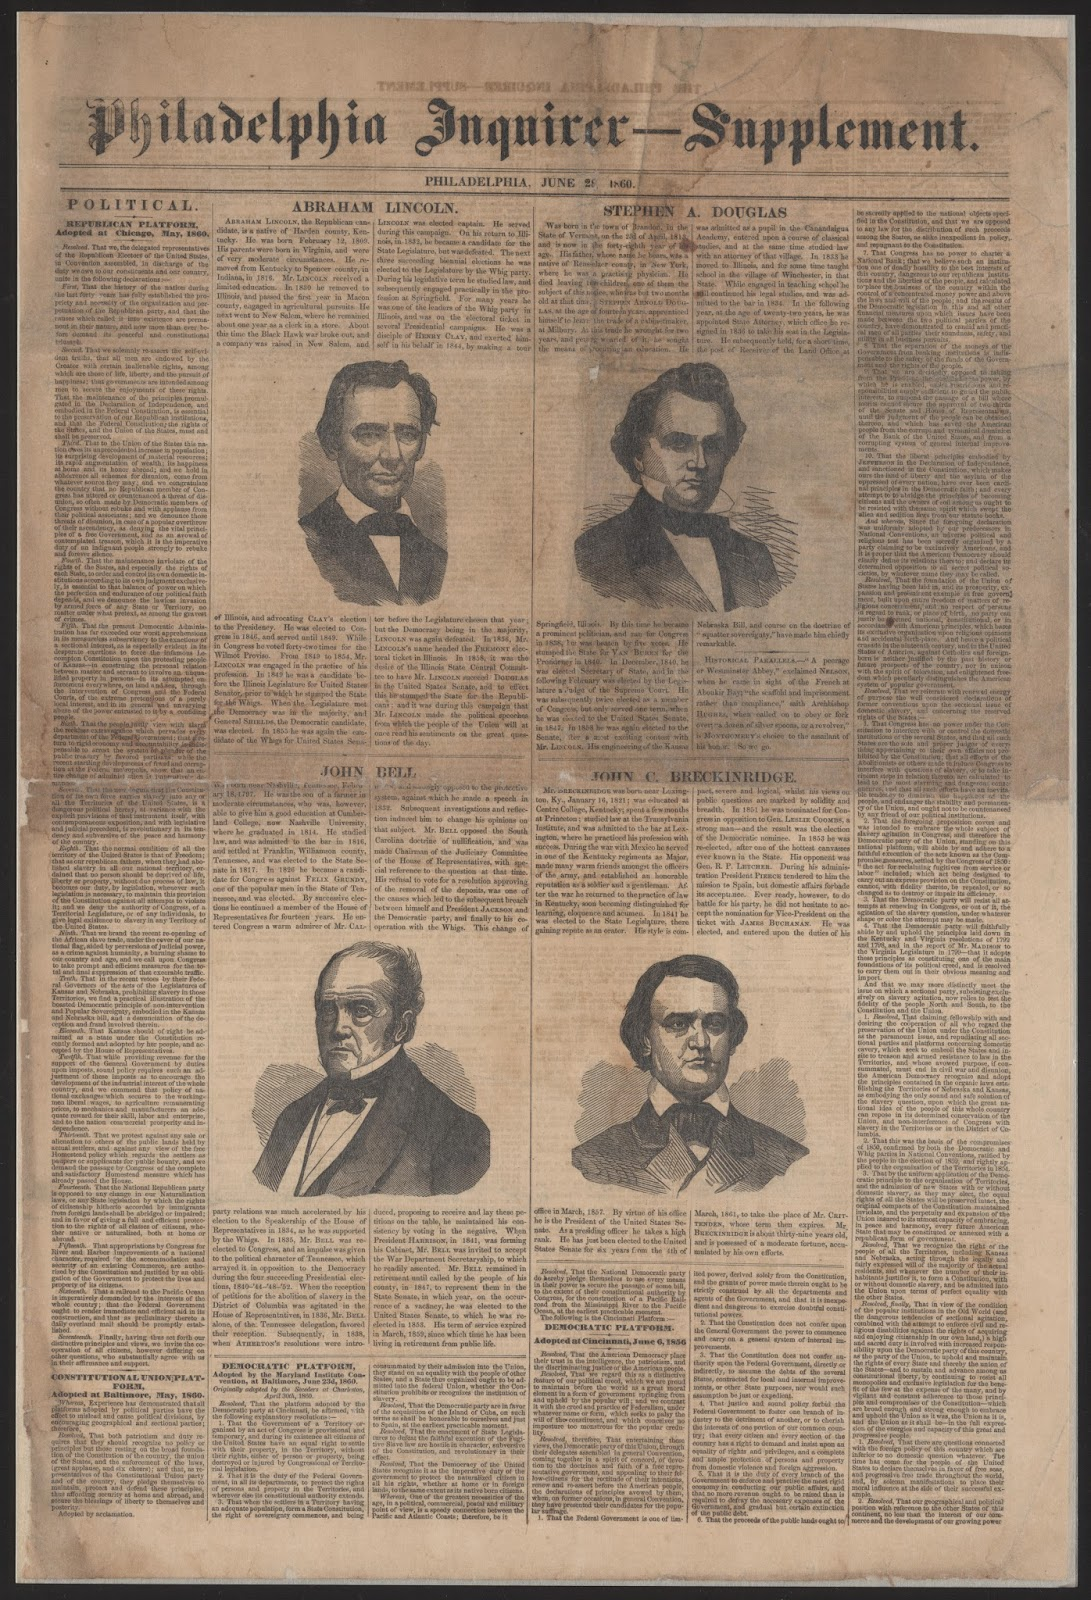 1860 election philadelphia inquirer supplement